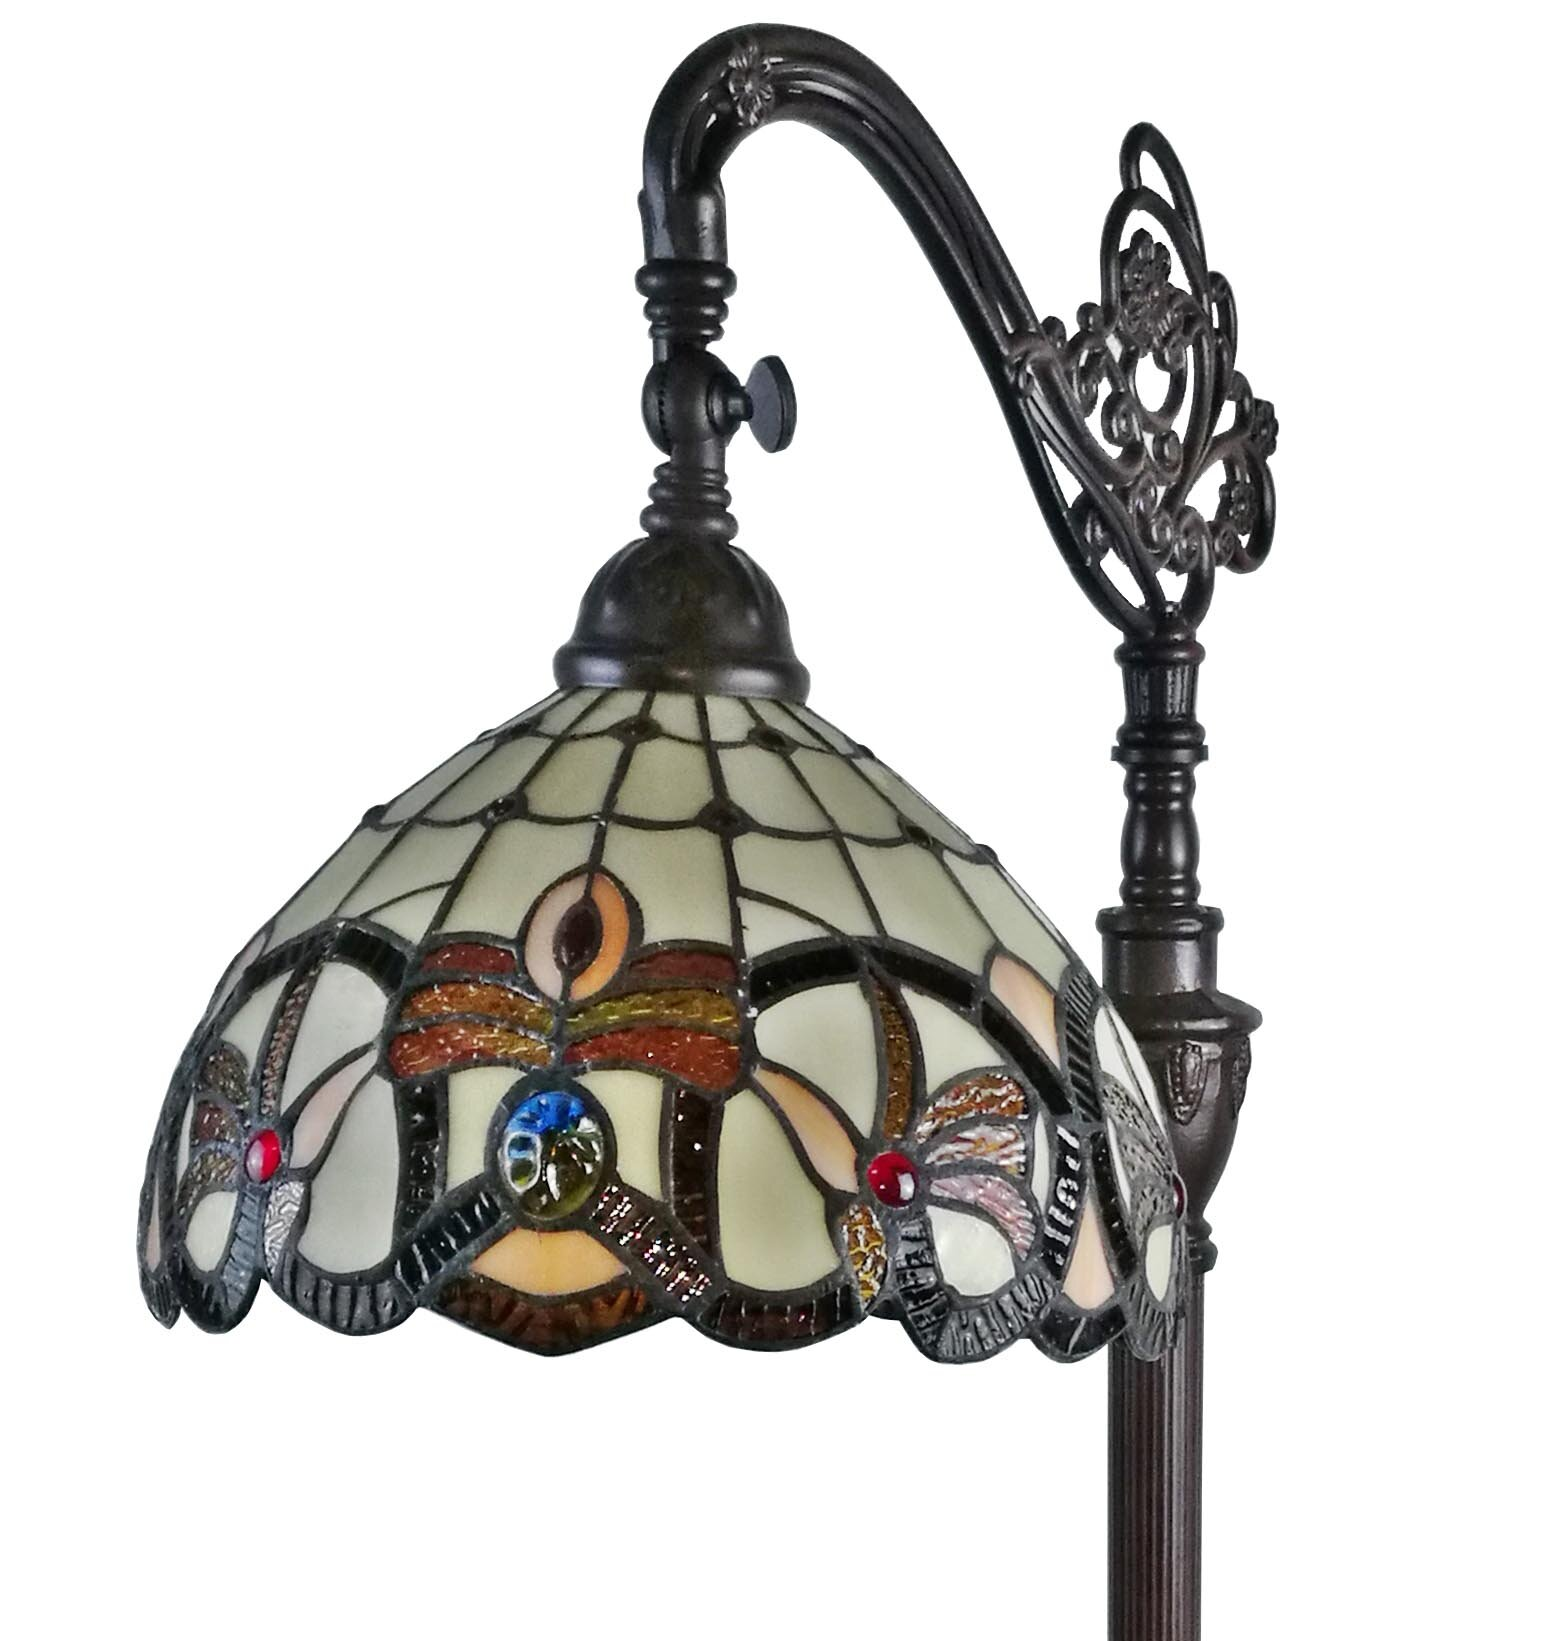 Amoralighting tiffany style 62 arched floor lamp reviews wayfair mozeypictures Choice Image